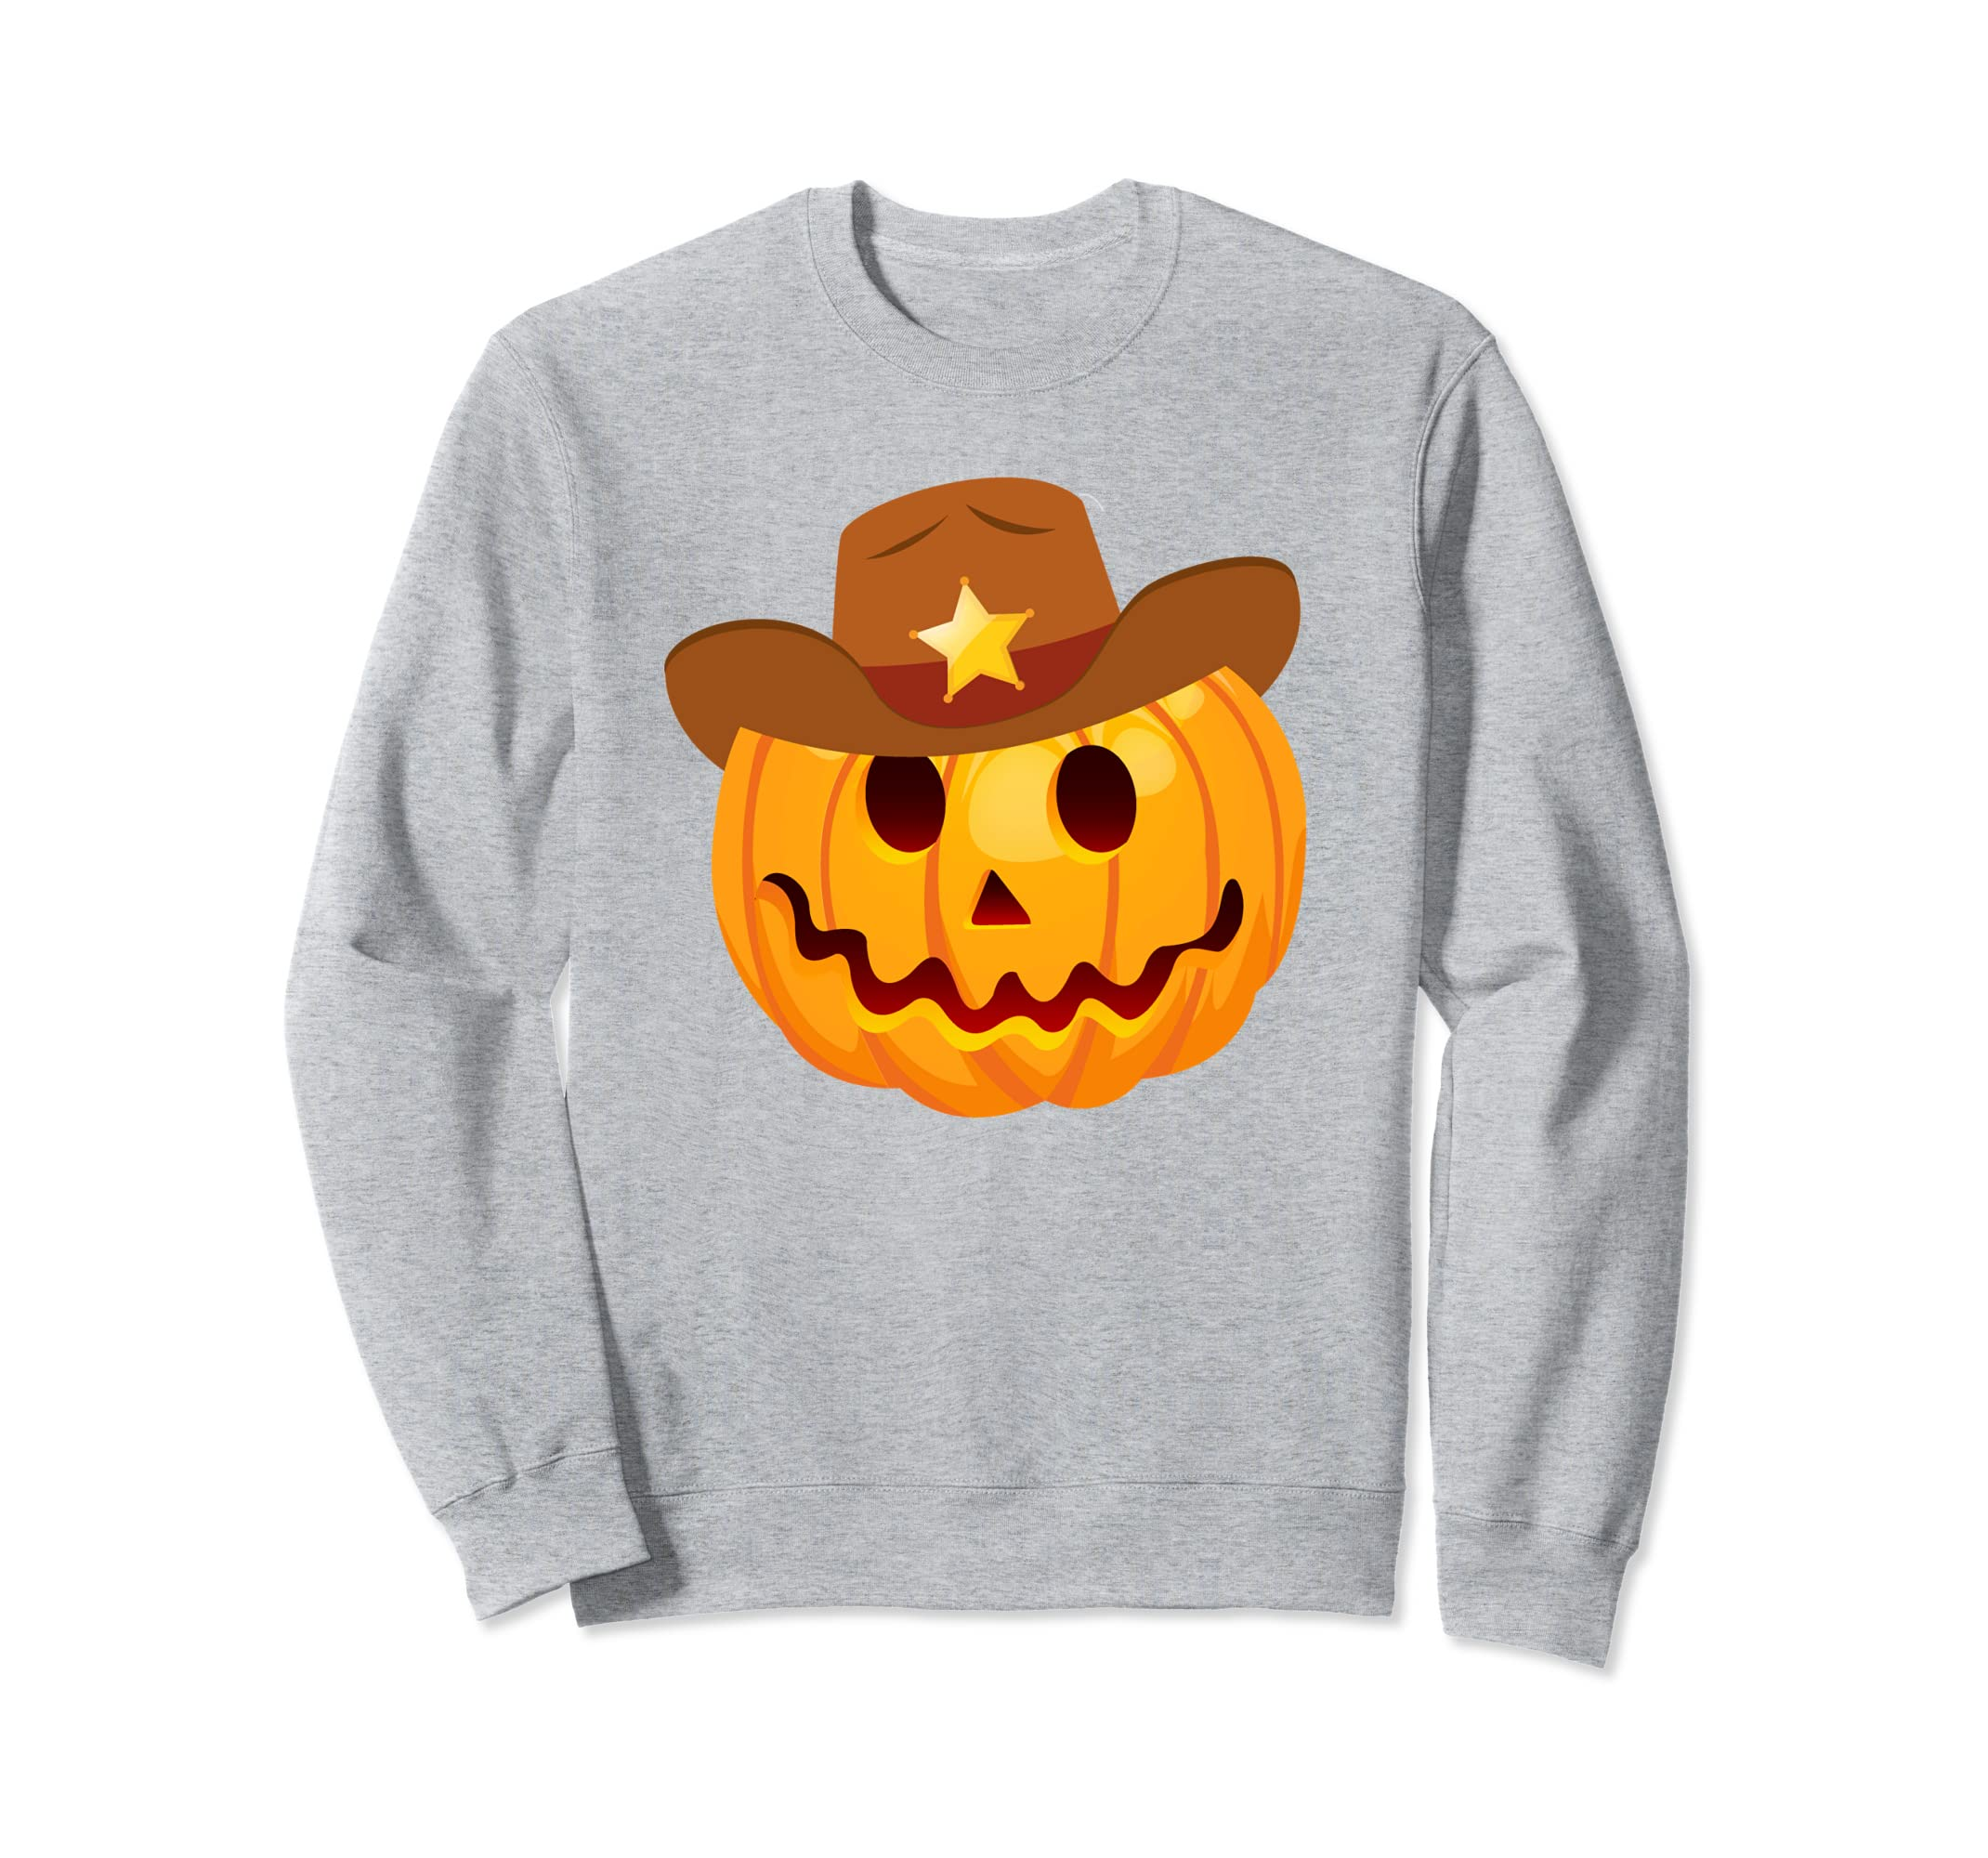 Awesome Graphic Funny Pumpkin Halloween Costume Sweatshirt-Rose